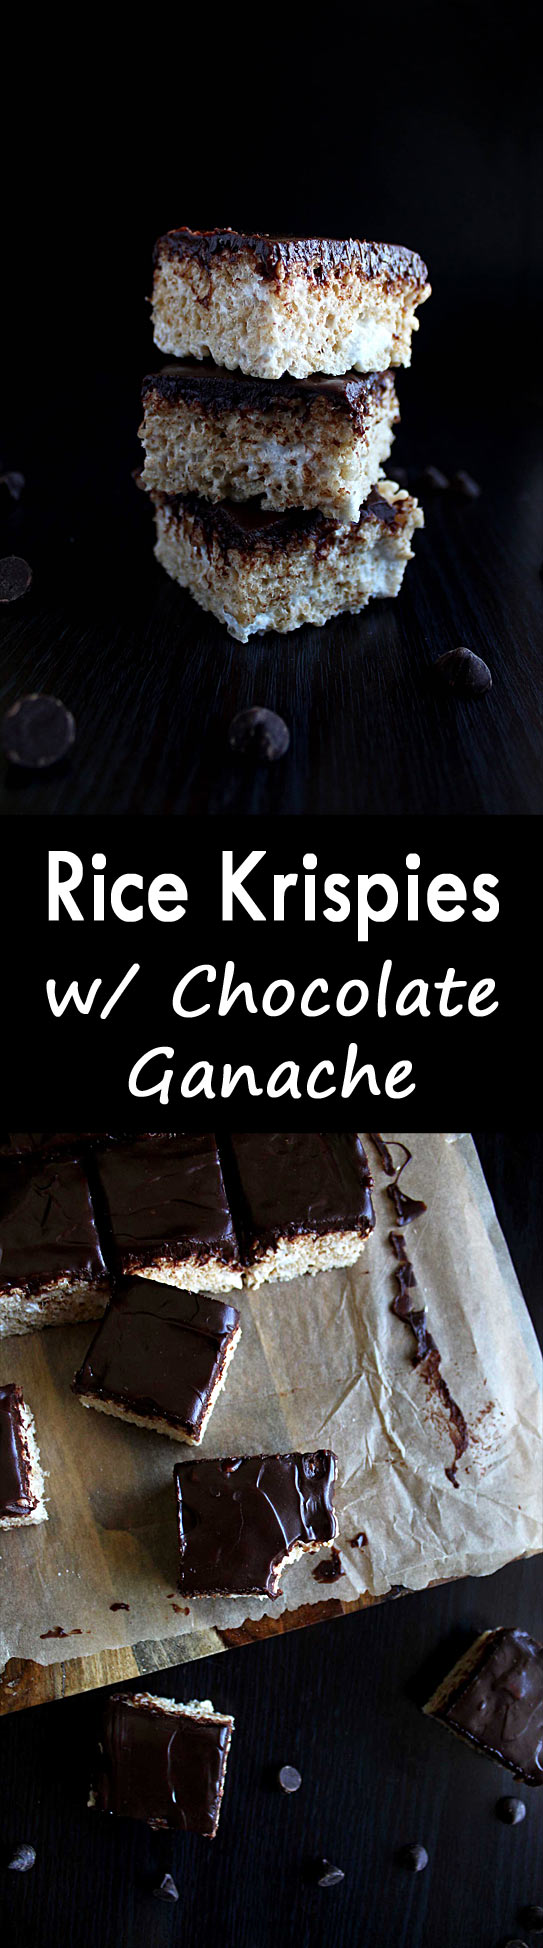 Rice Krispies with Chocolate | Soft Rice Crispy Treats | Marshmallow Rice Krispies | Kid Treats | Ganache | Easy Treats